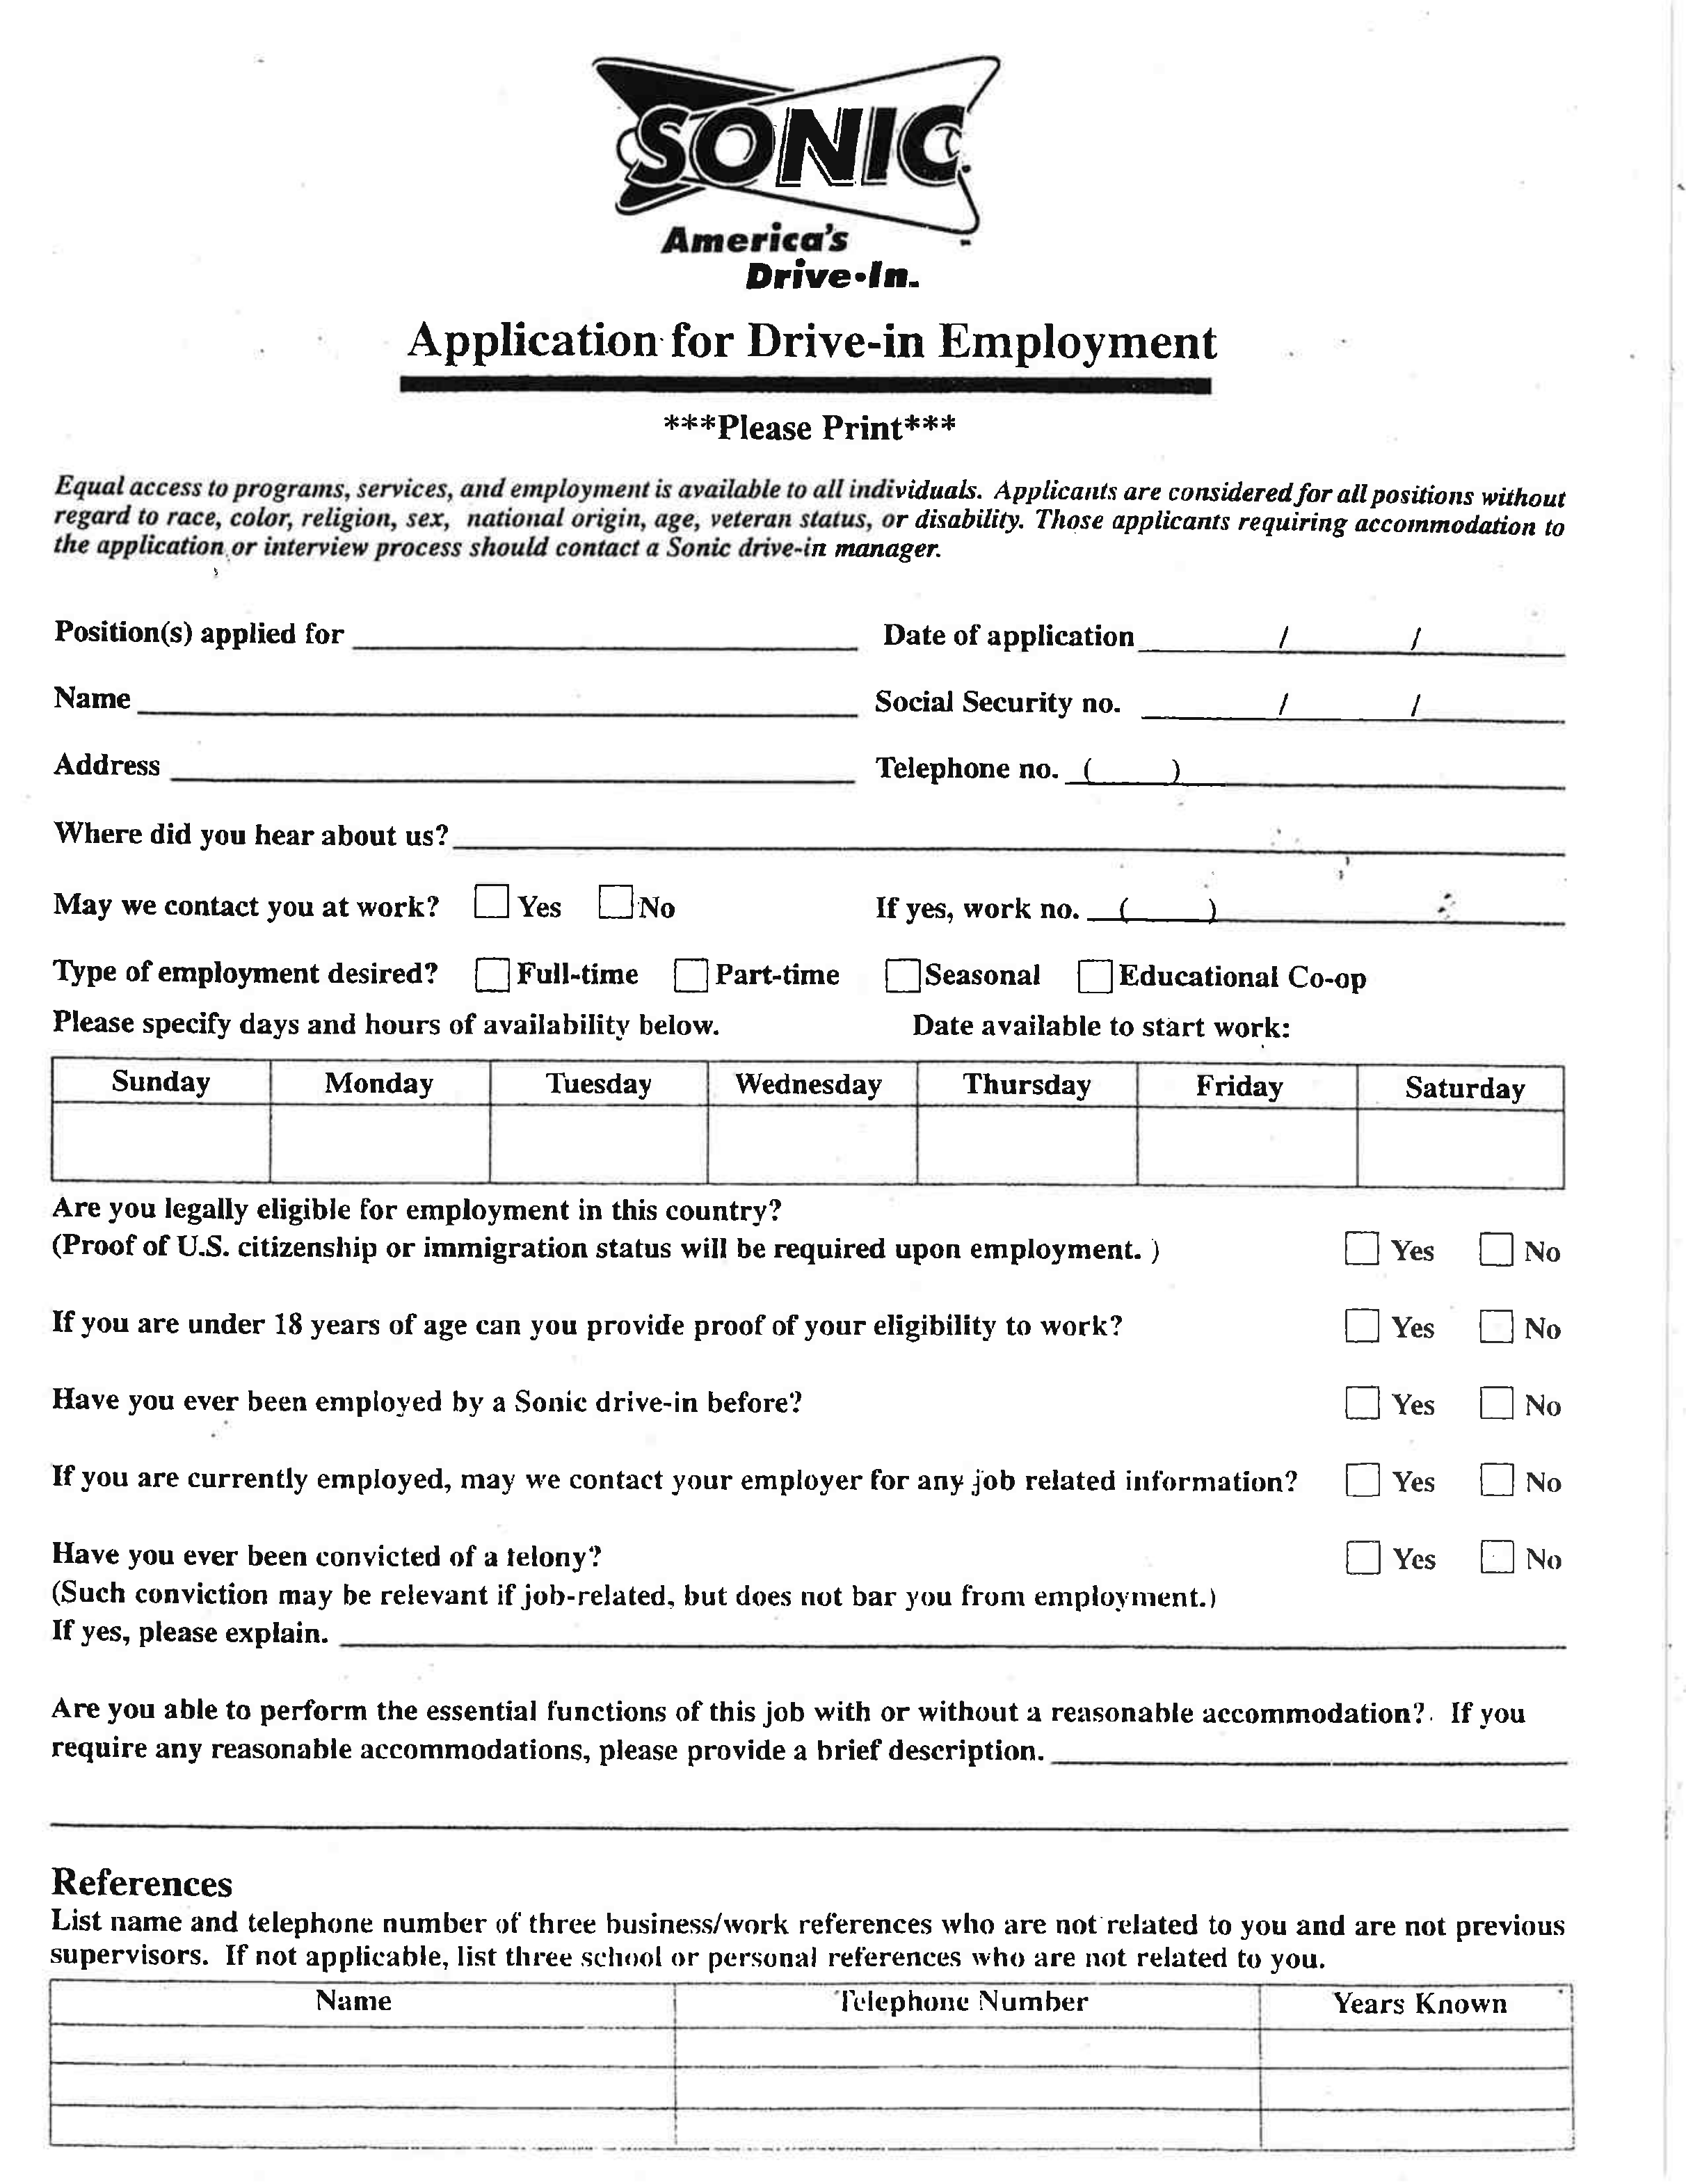 Sonic Drive-in Job Application Form Free Download